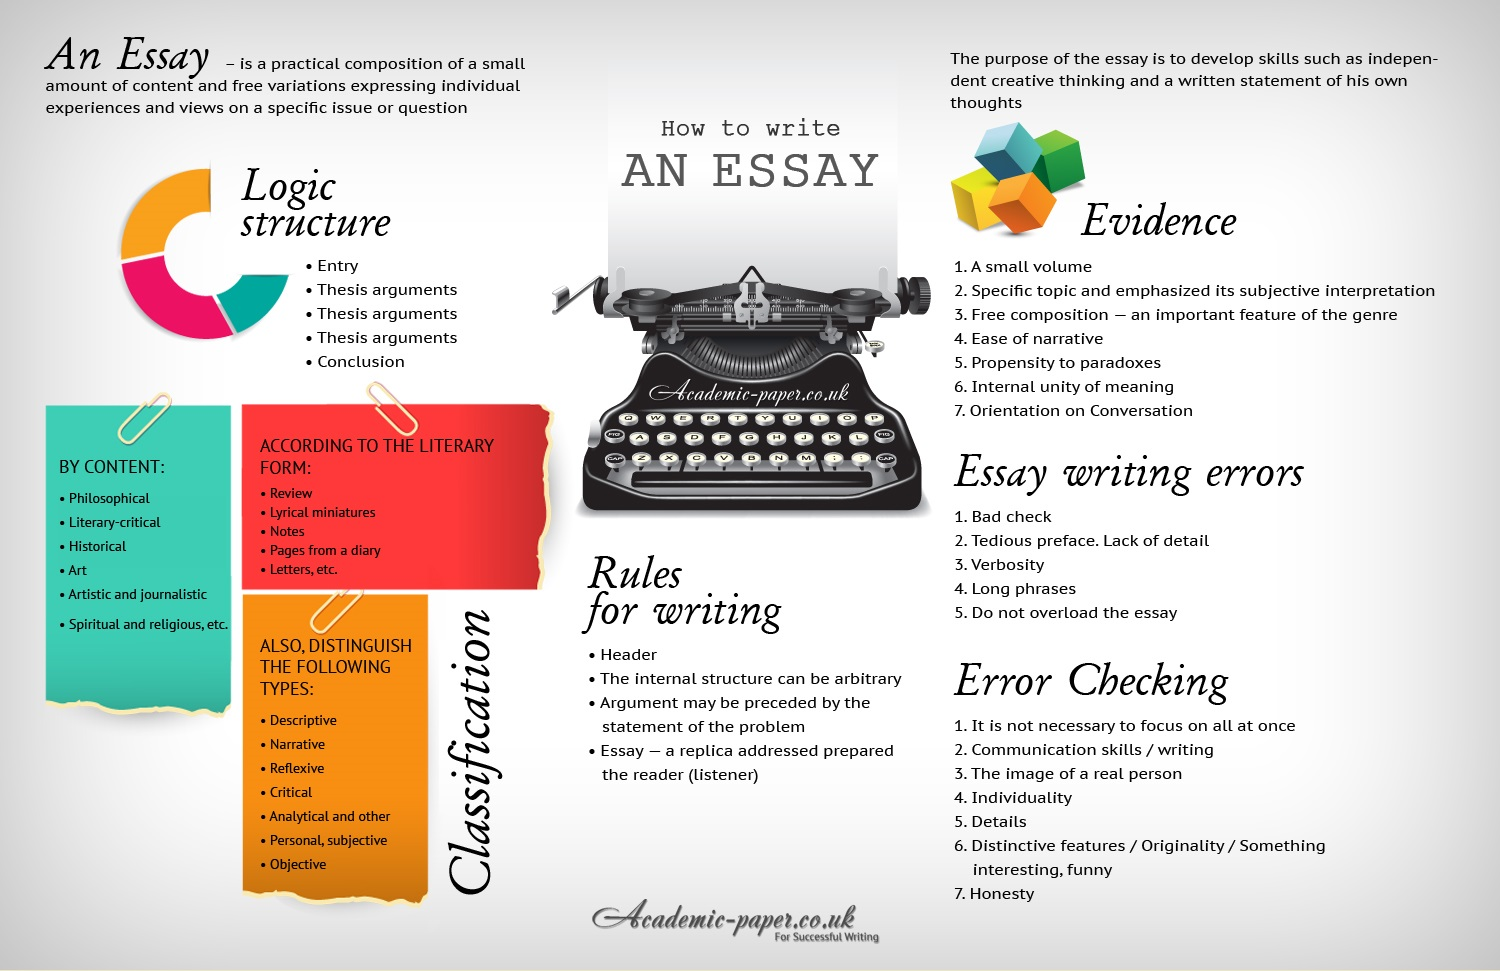 essay writing in the uk Detailed reviews and rankings of uk essay writing services from students and experts see top rated services to make the best choice for your essay writing.